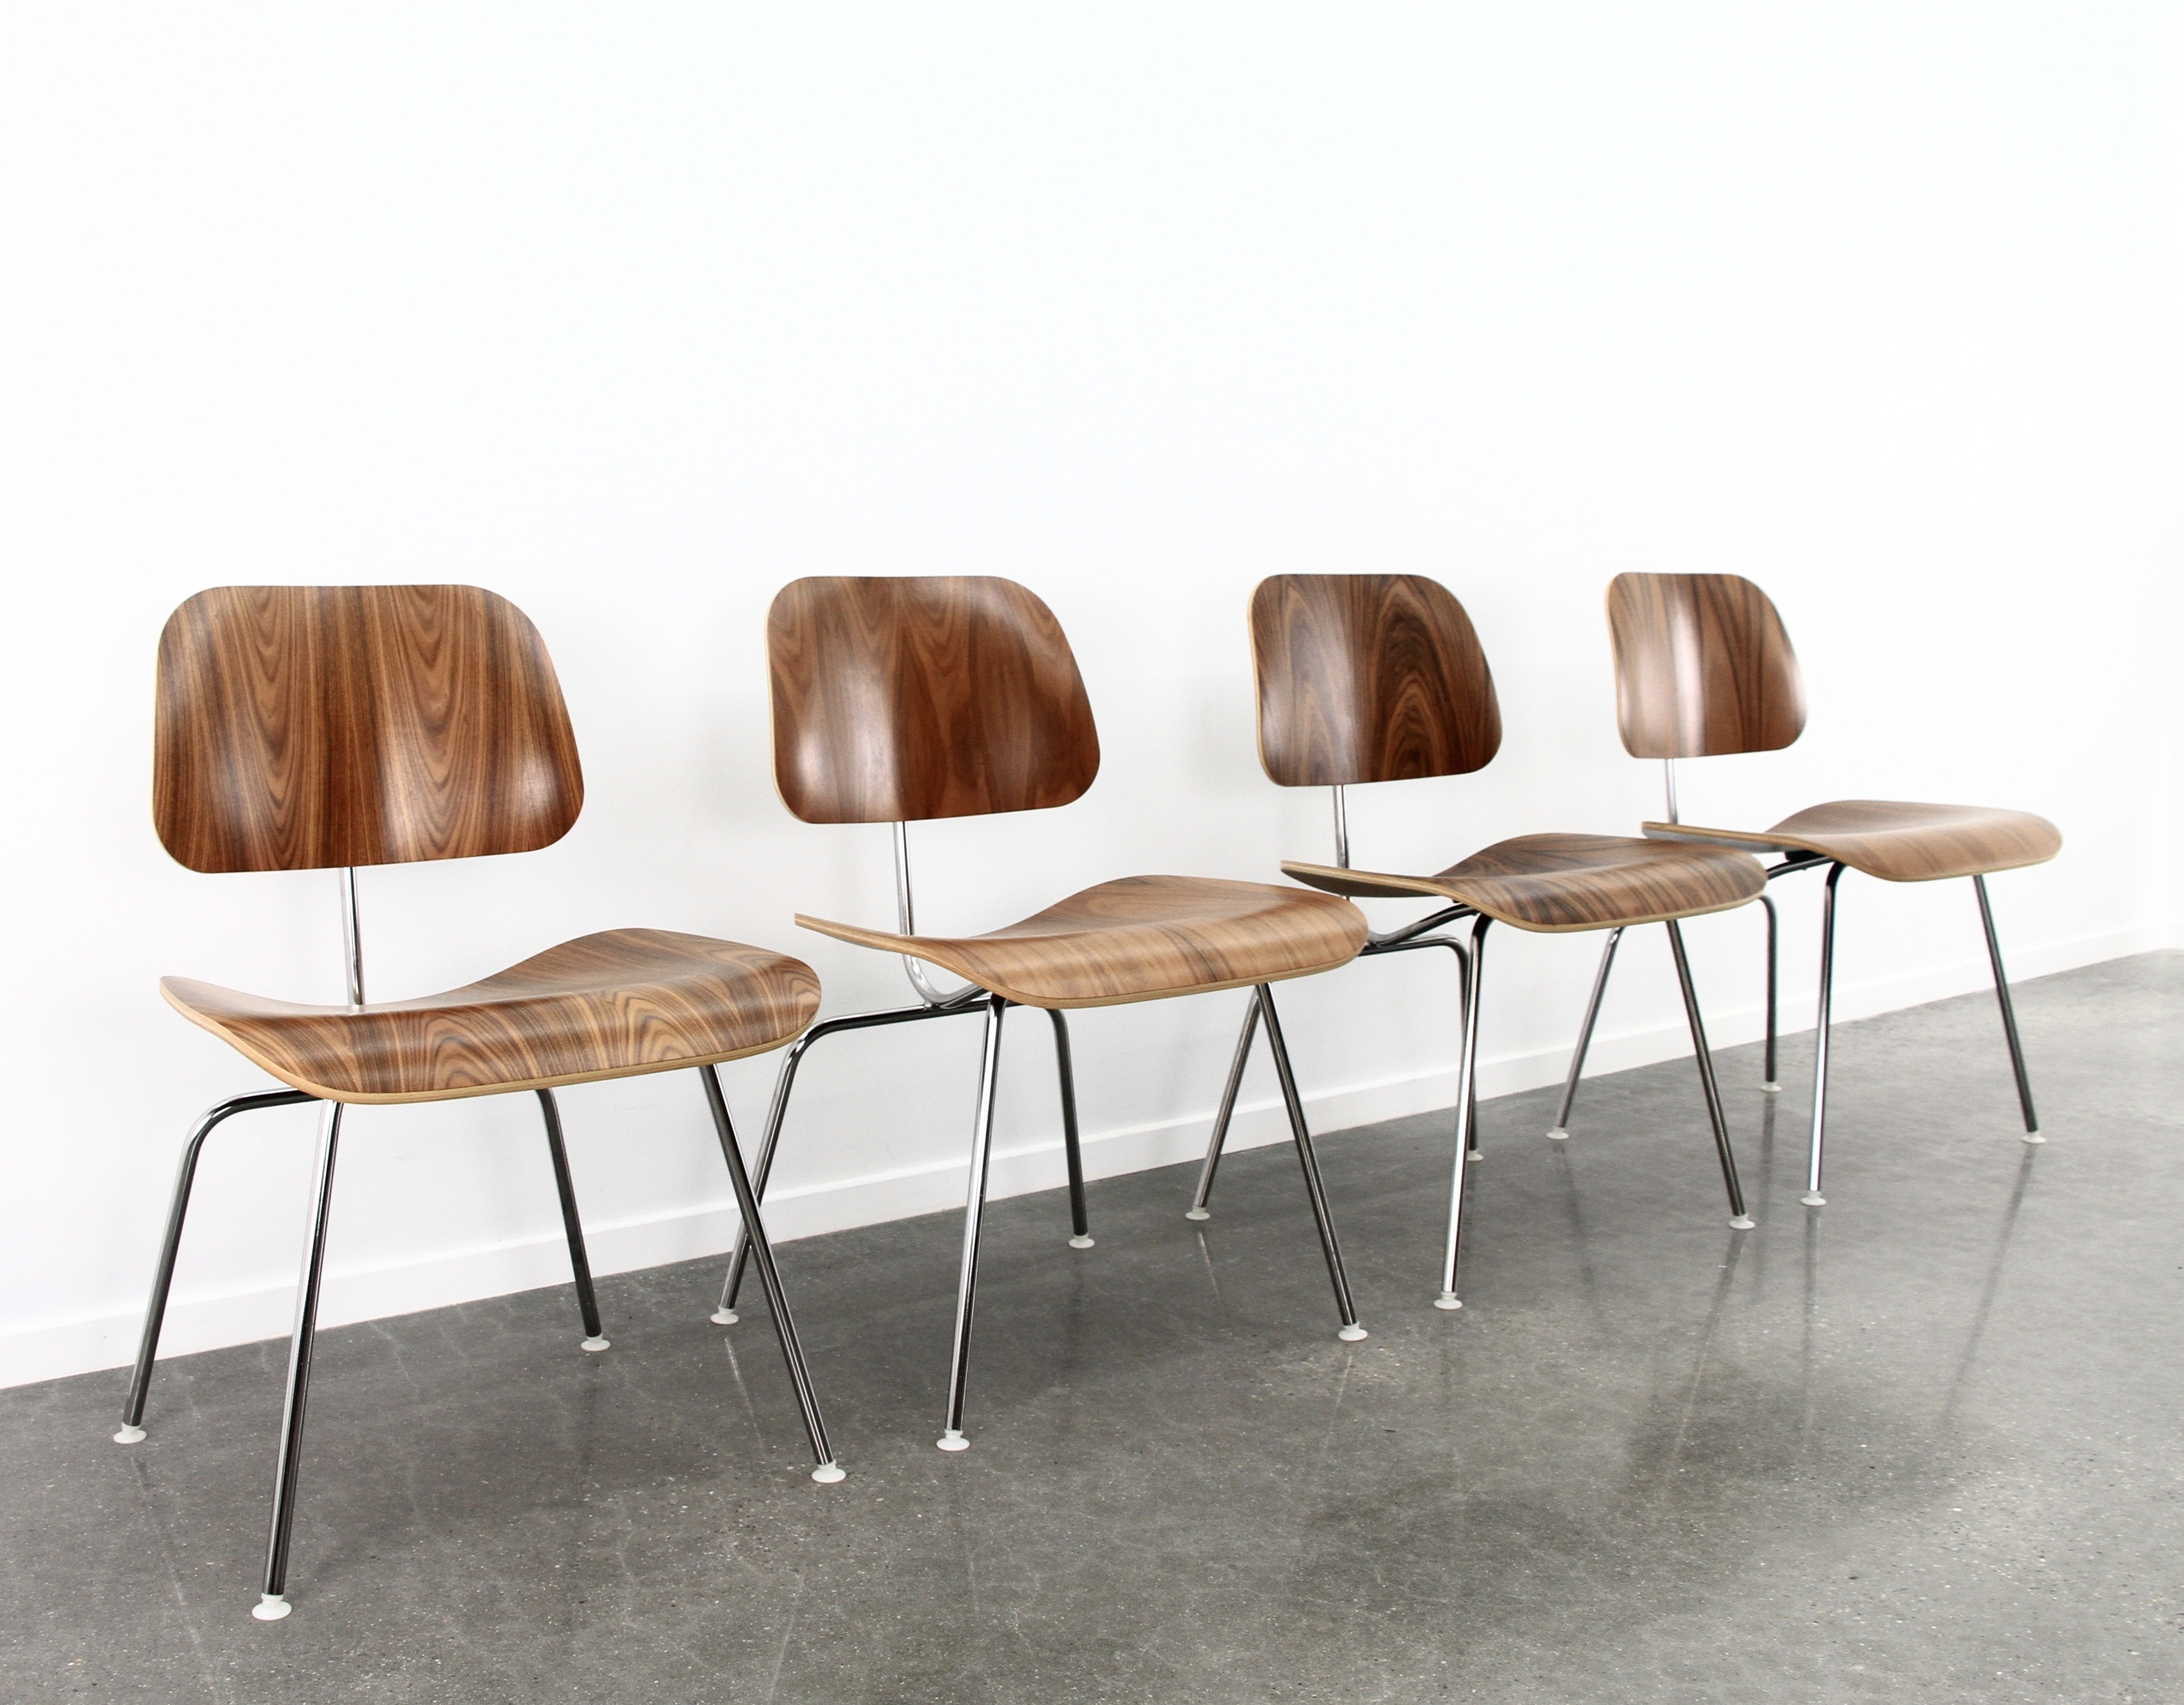 Set of 4 Eames DCM dining chair metal in santos  : set of 4 eames dcm dining chair metal in santos palissander finish from www.vntg.com size 4016 x 3136 jpeg 5104kB